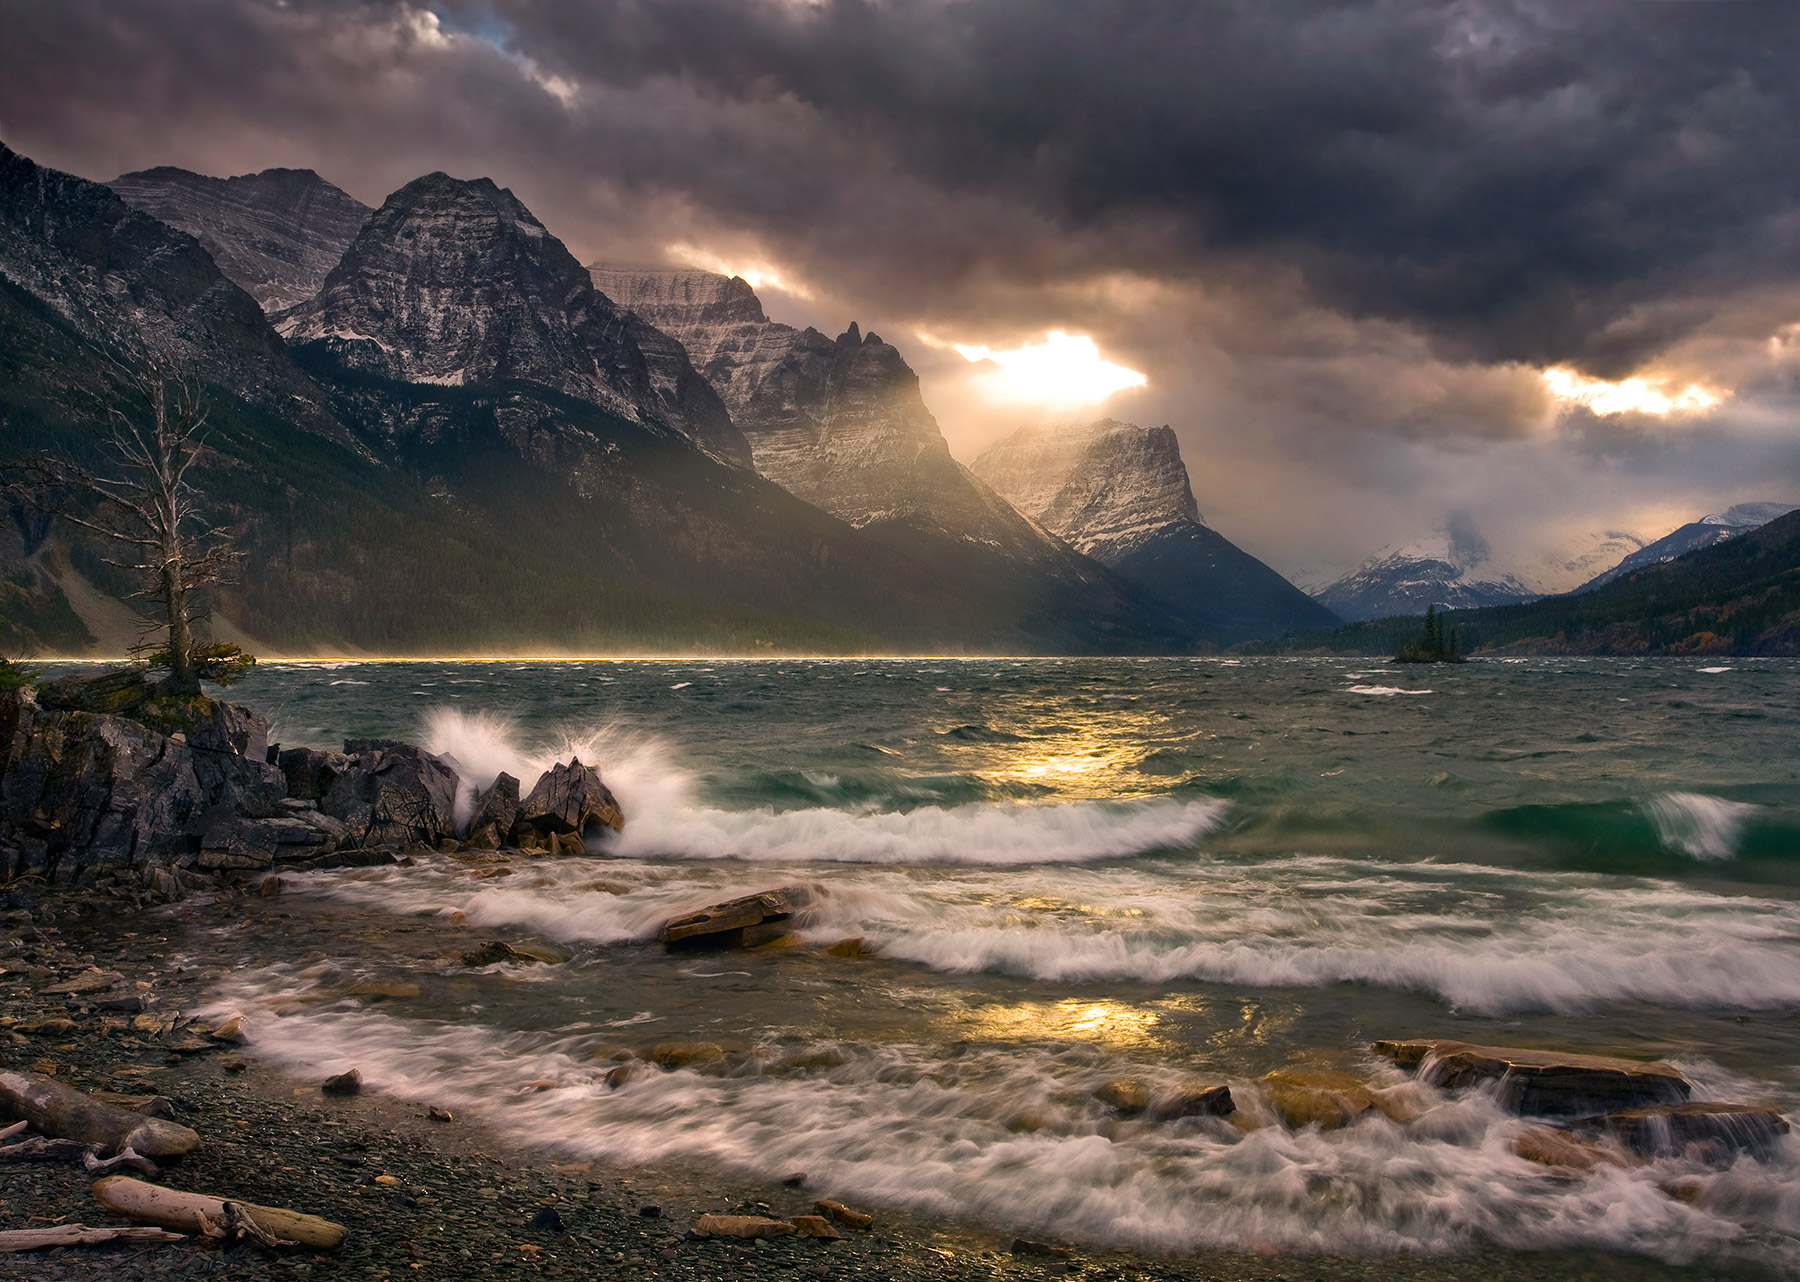 saint mary lake, glacier, stunning, dramtic, beams, light, stormy, waves, photo